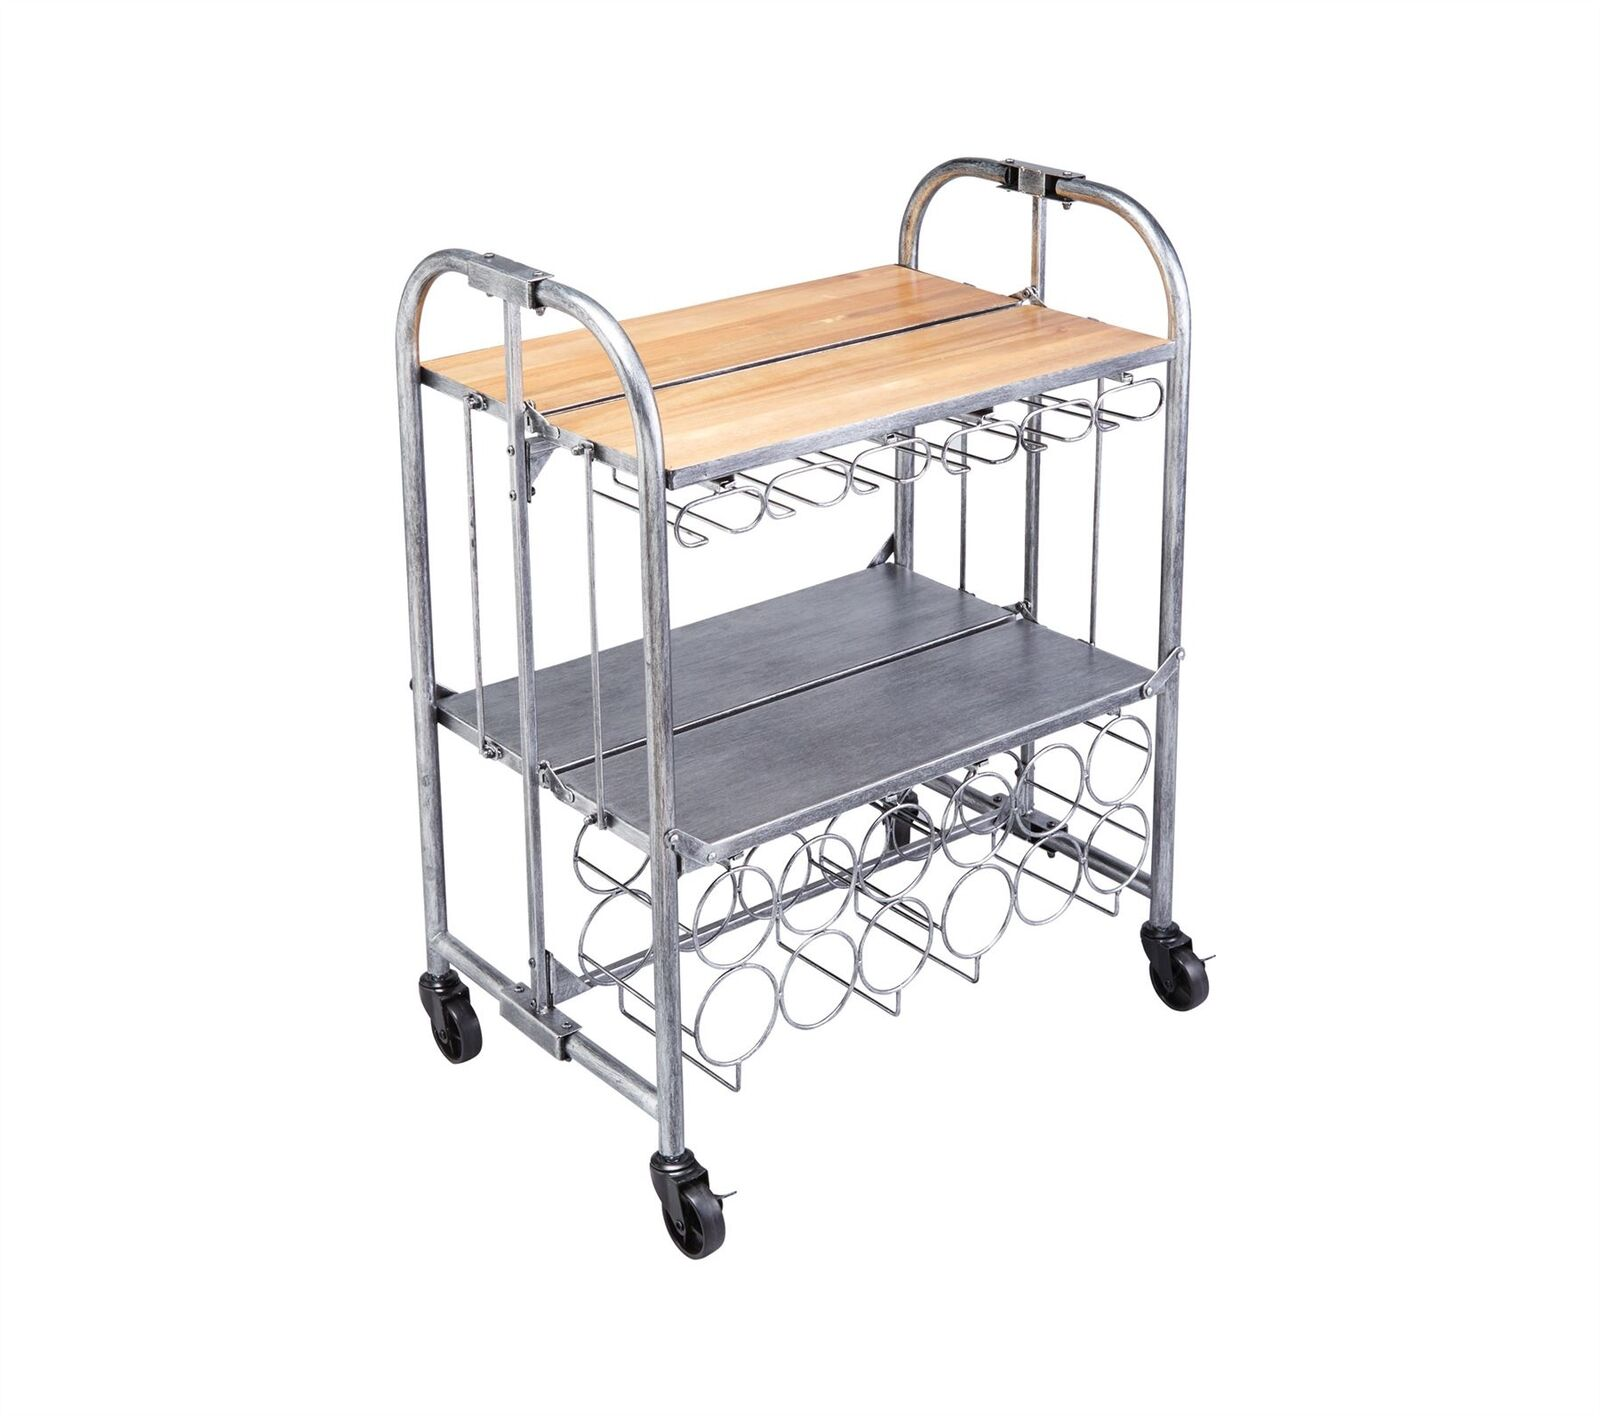 BarCraft Folding Industrial Look Carbon Steel Home Bar Drinks Trolley